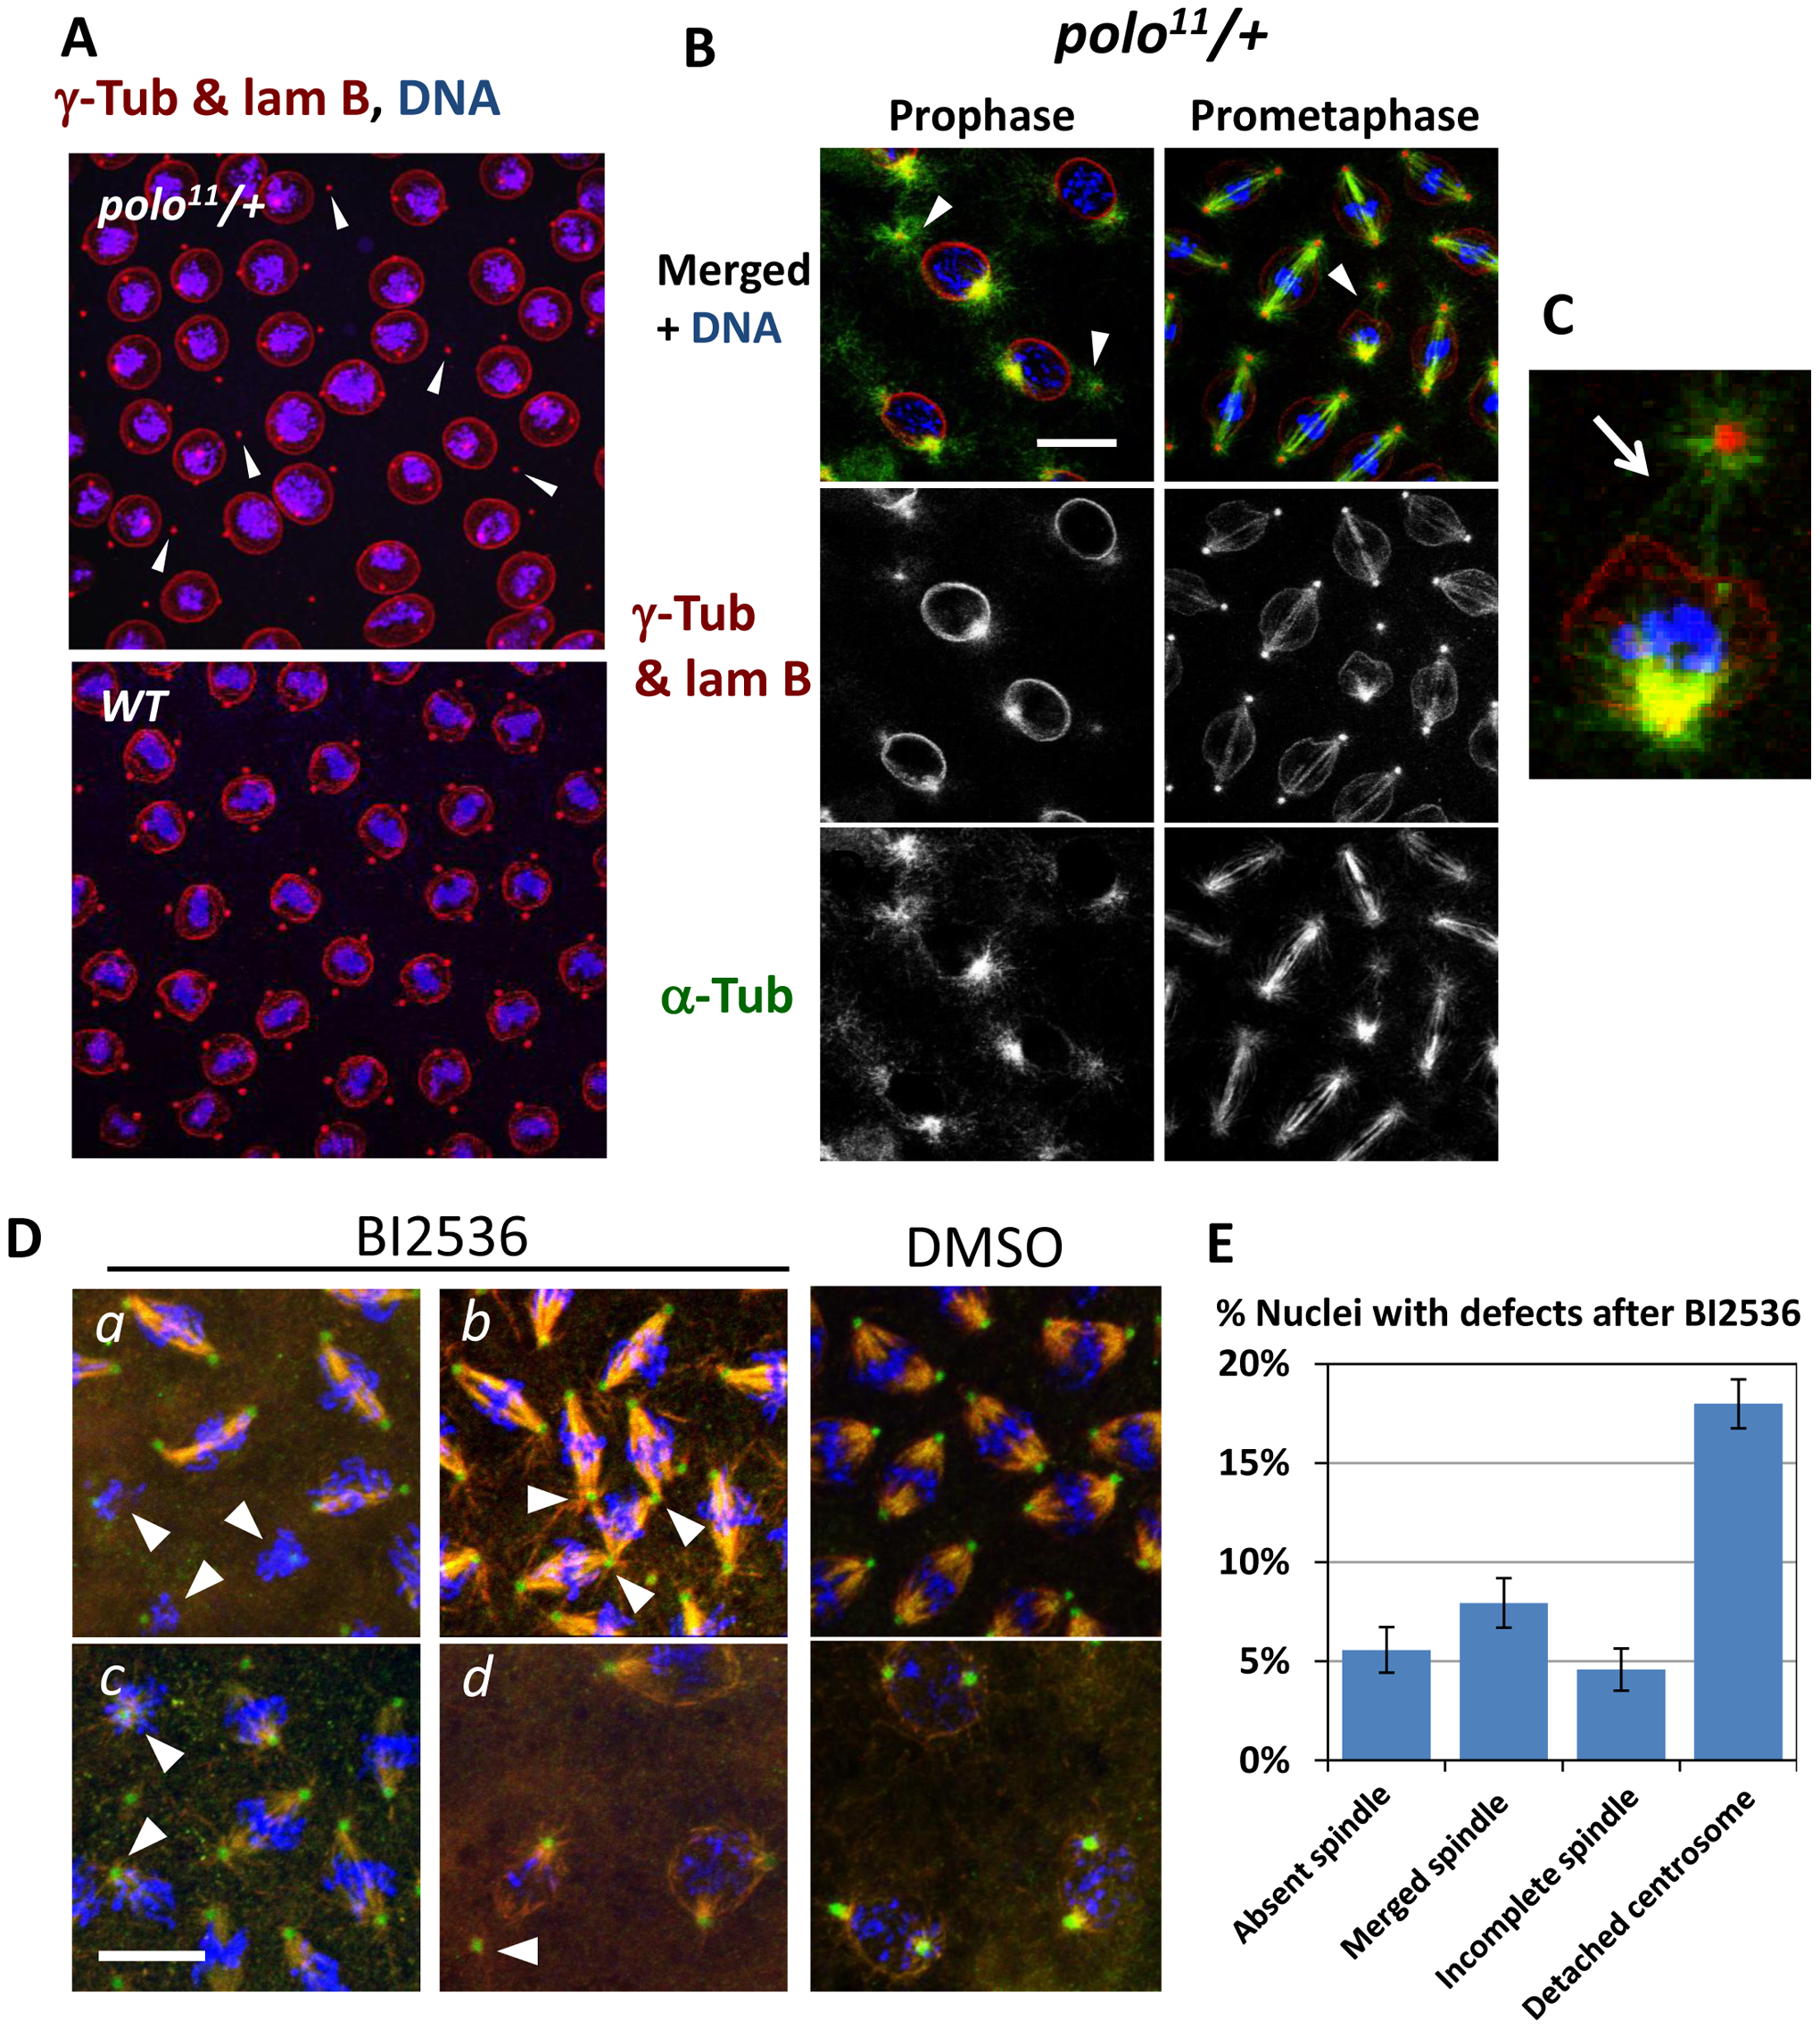 The Polo kinase is required for proper centrosome attachment to nuclei in syncytial embryos.